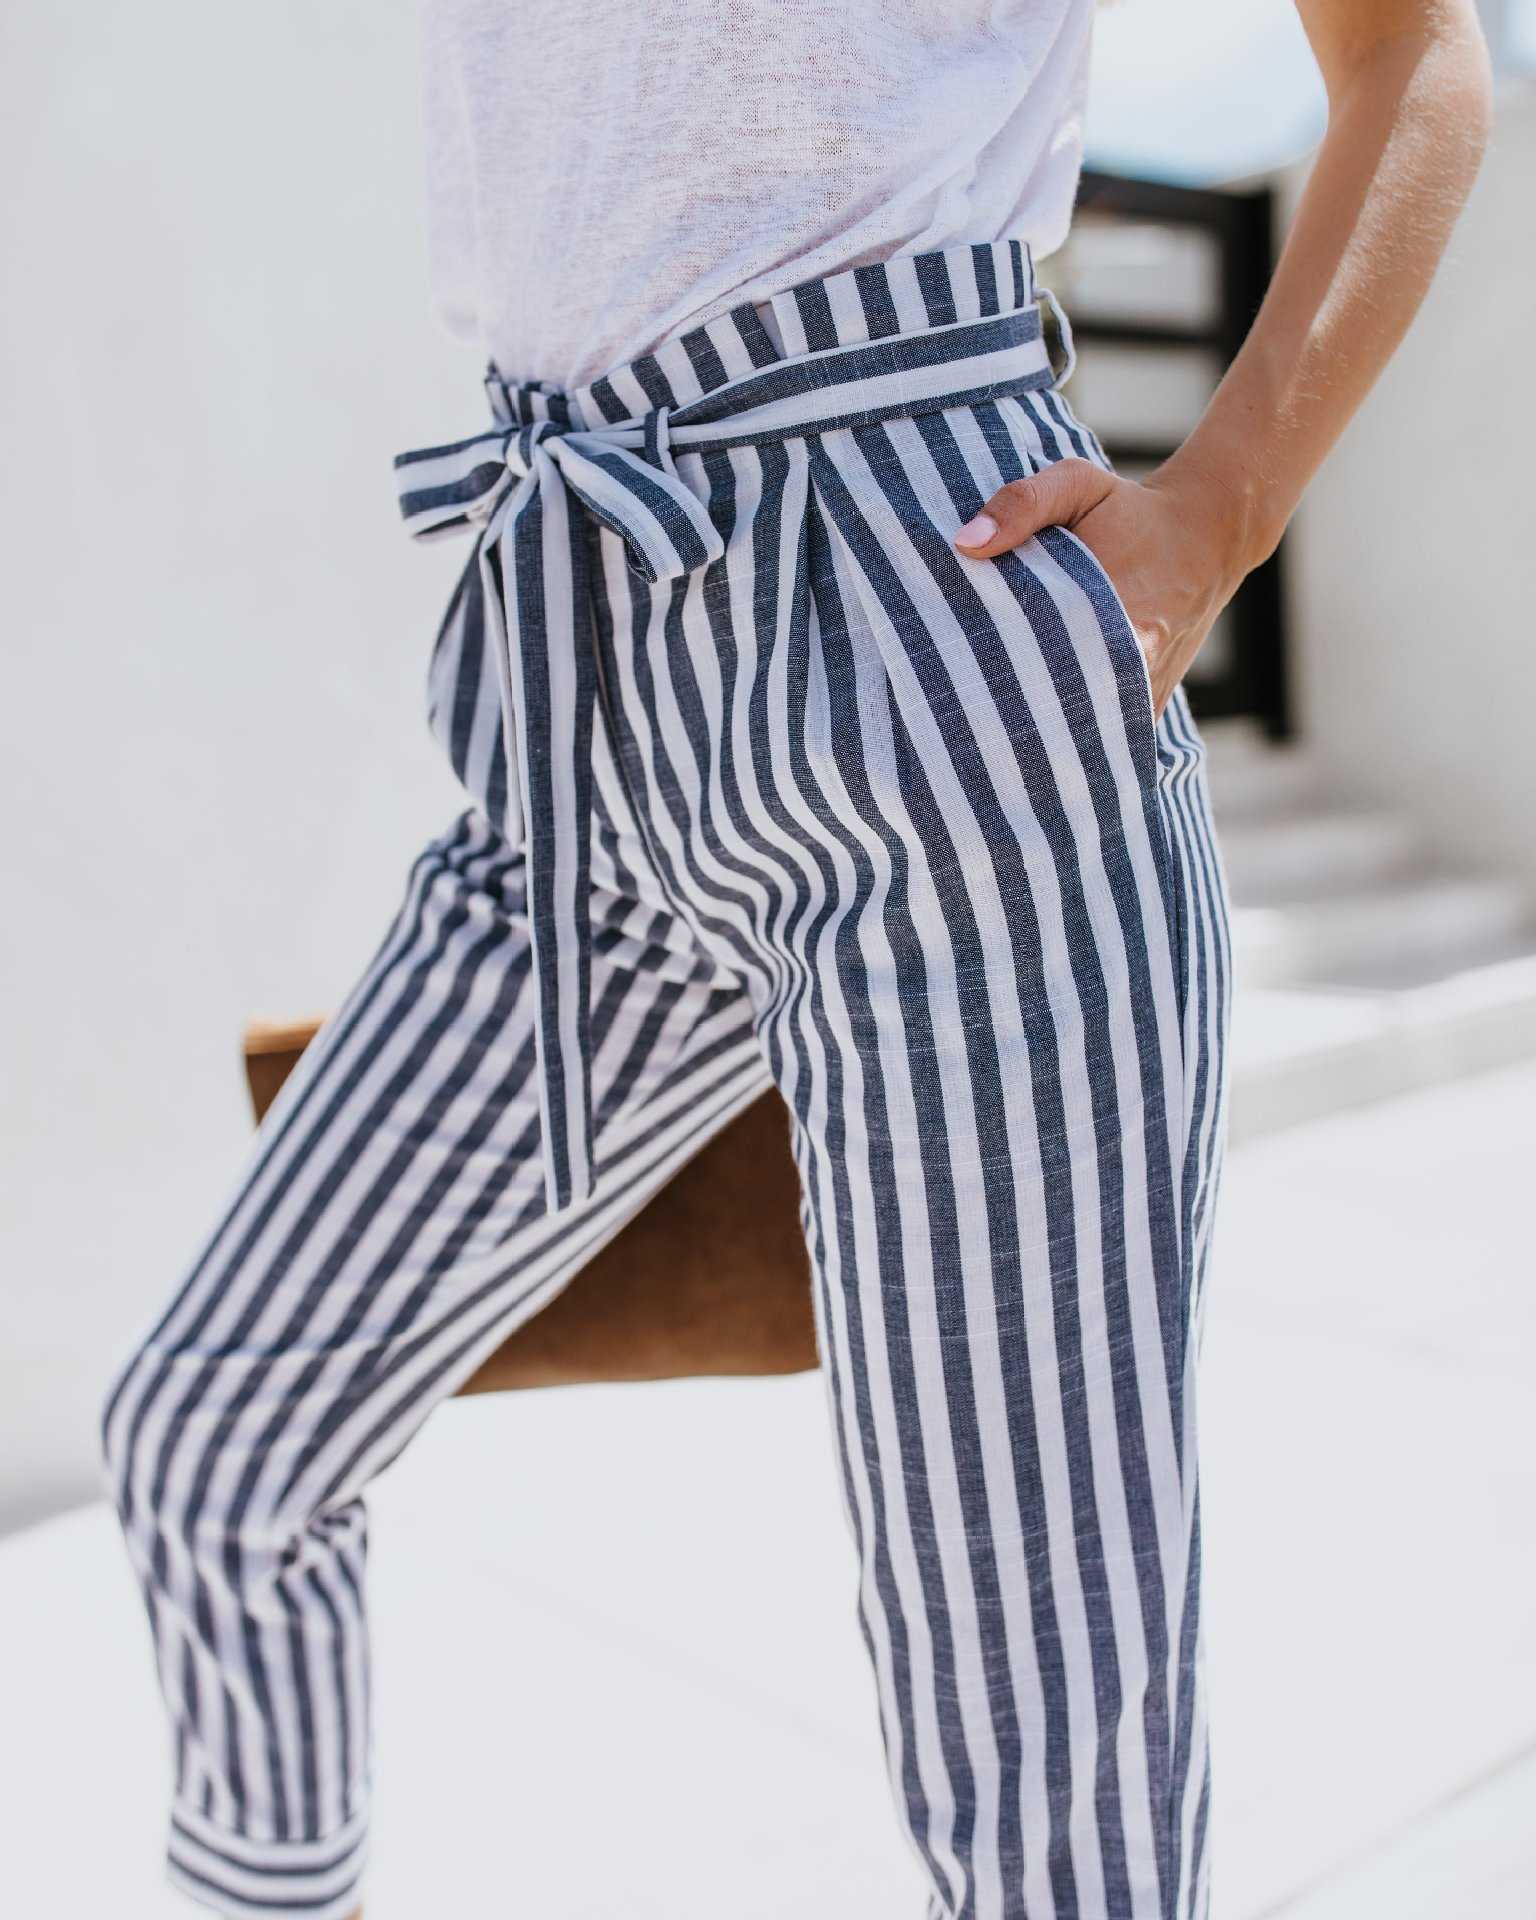 Tie Waist Belted Cigarette Trousers Striped Pants